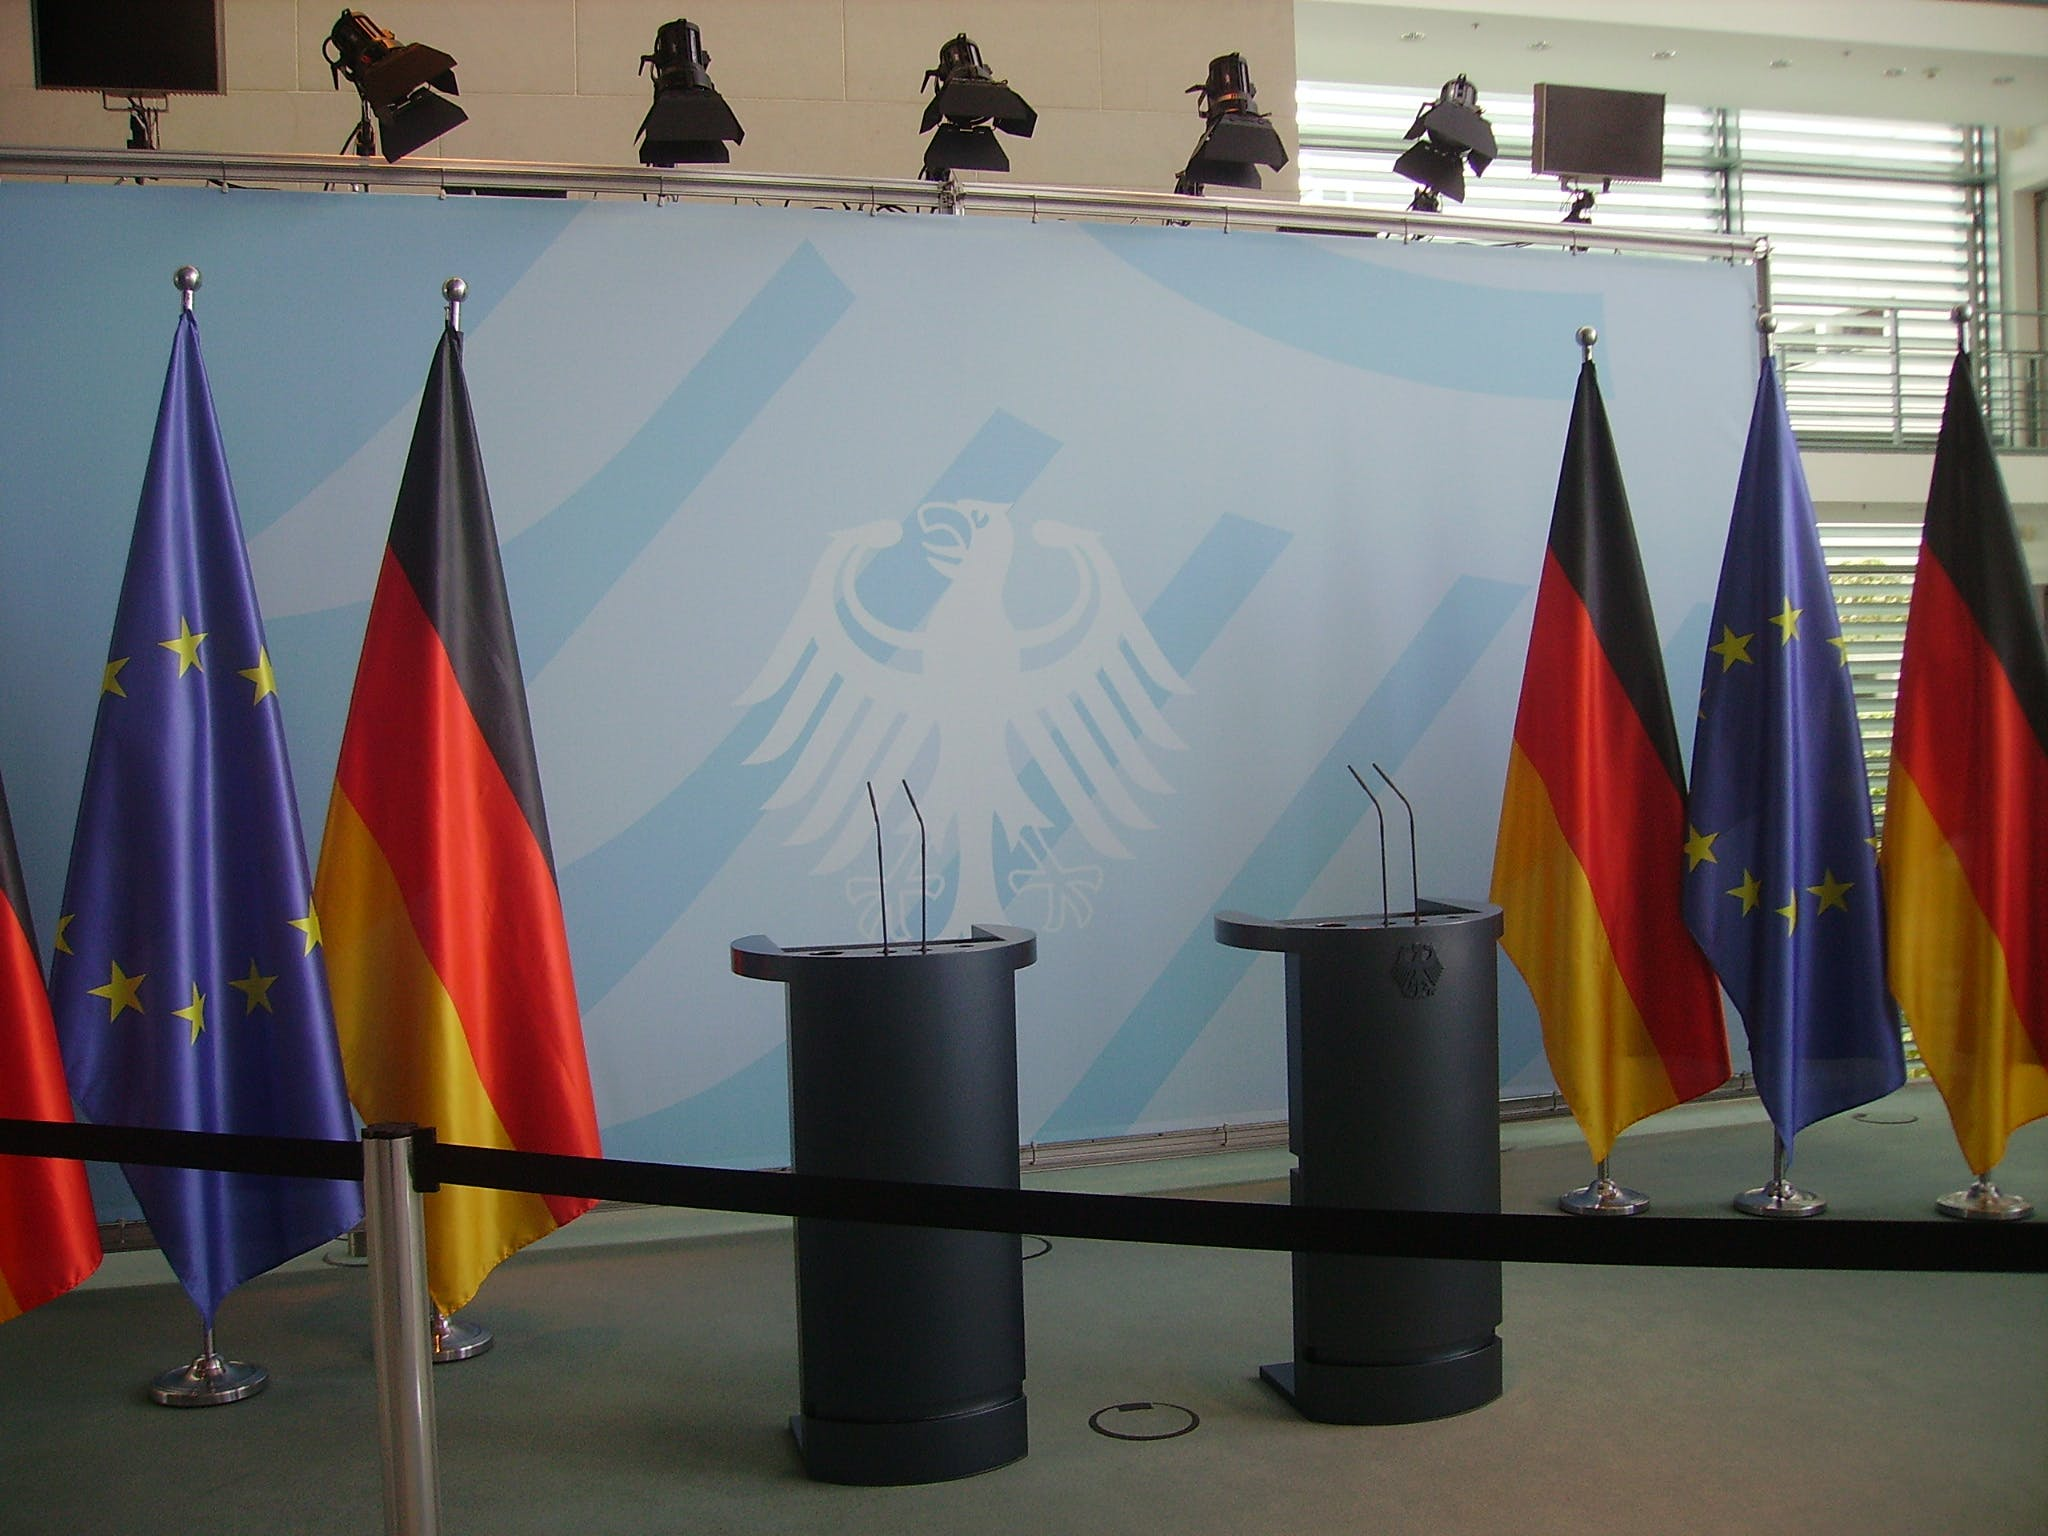 Six Assorted-color Flags Hanging on Gray Stainless Steel Poles